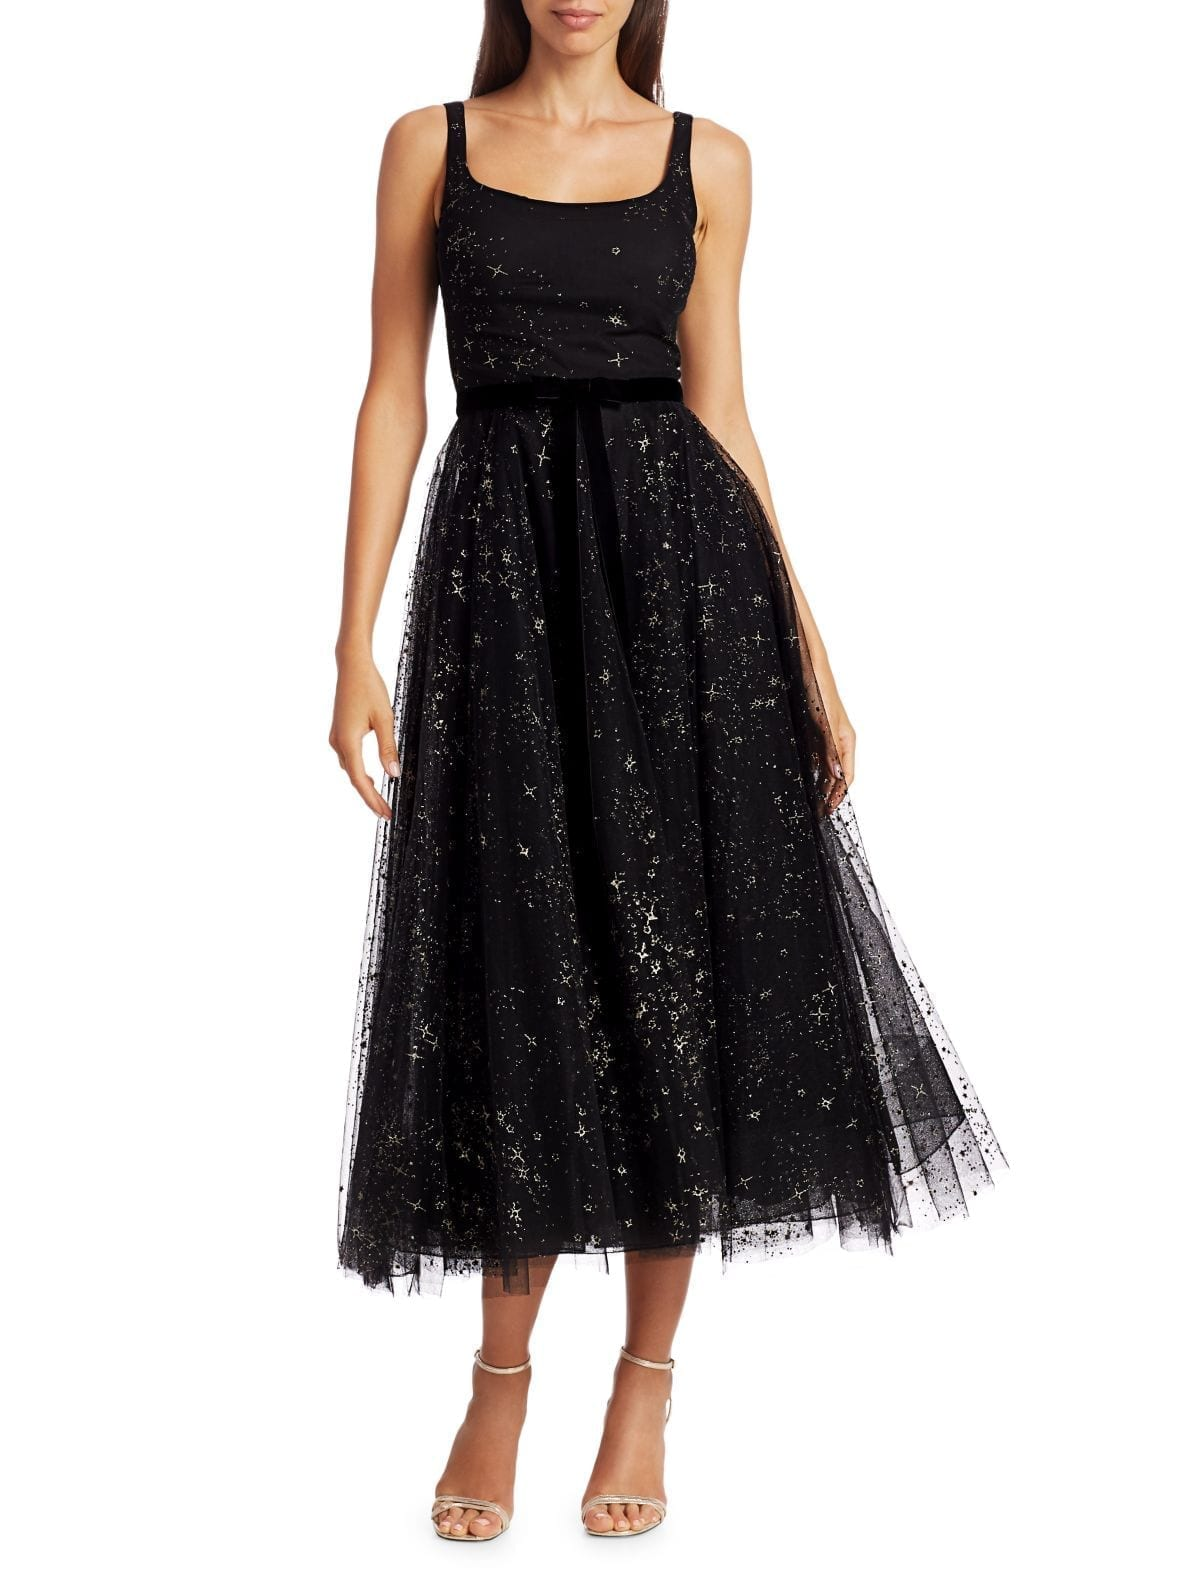 MARCHESA NOTTE Glitter Tulle Sleeveless A-Line Dress